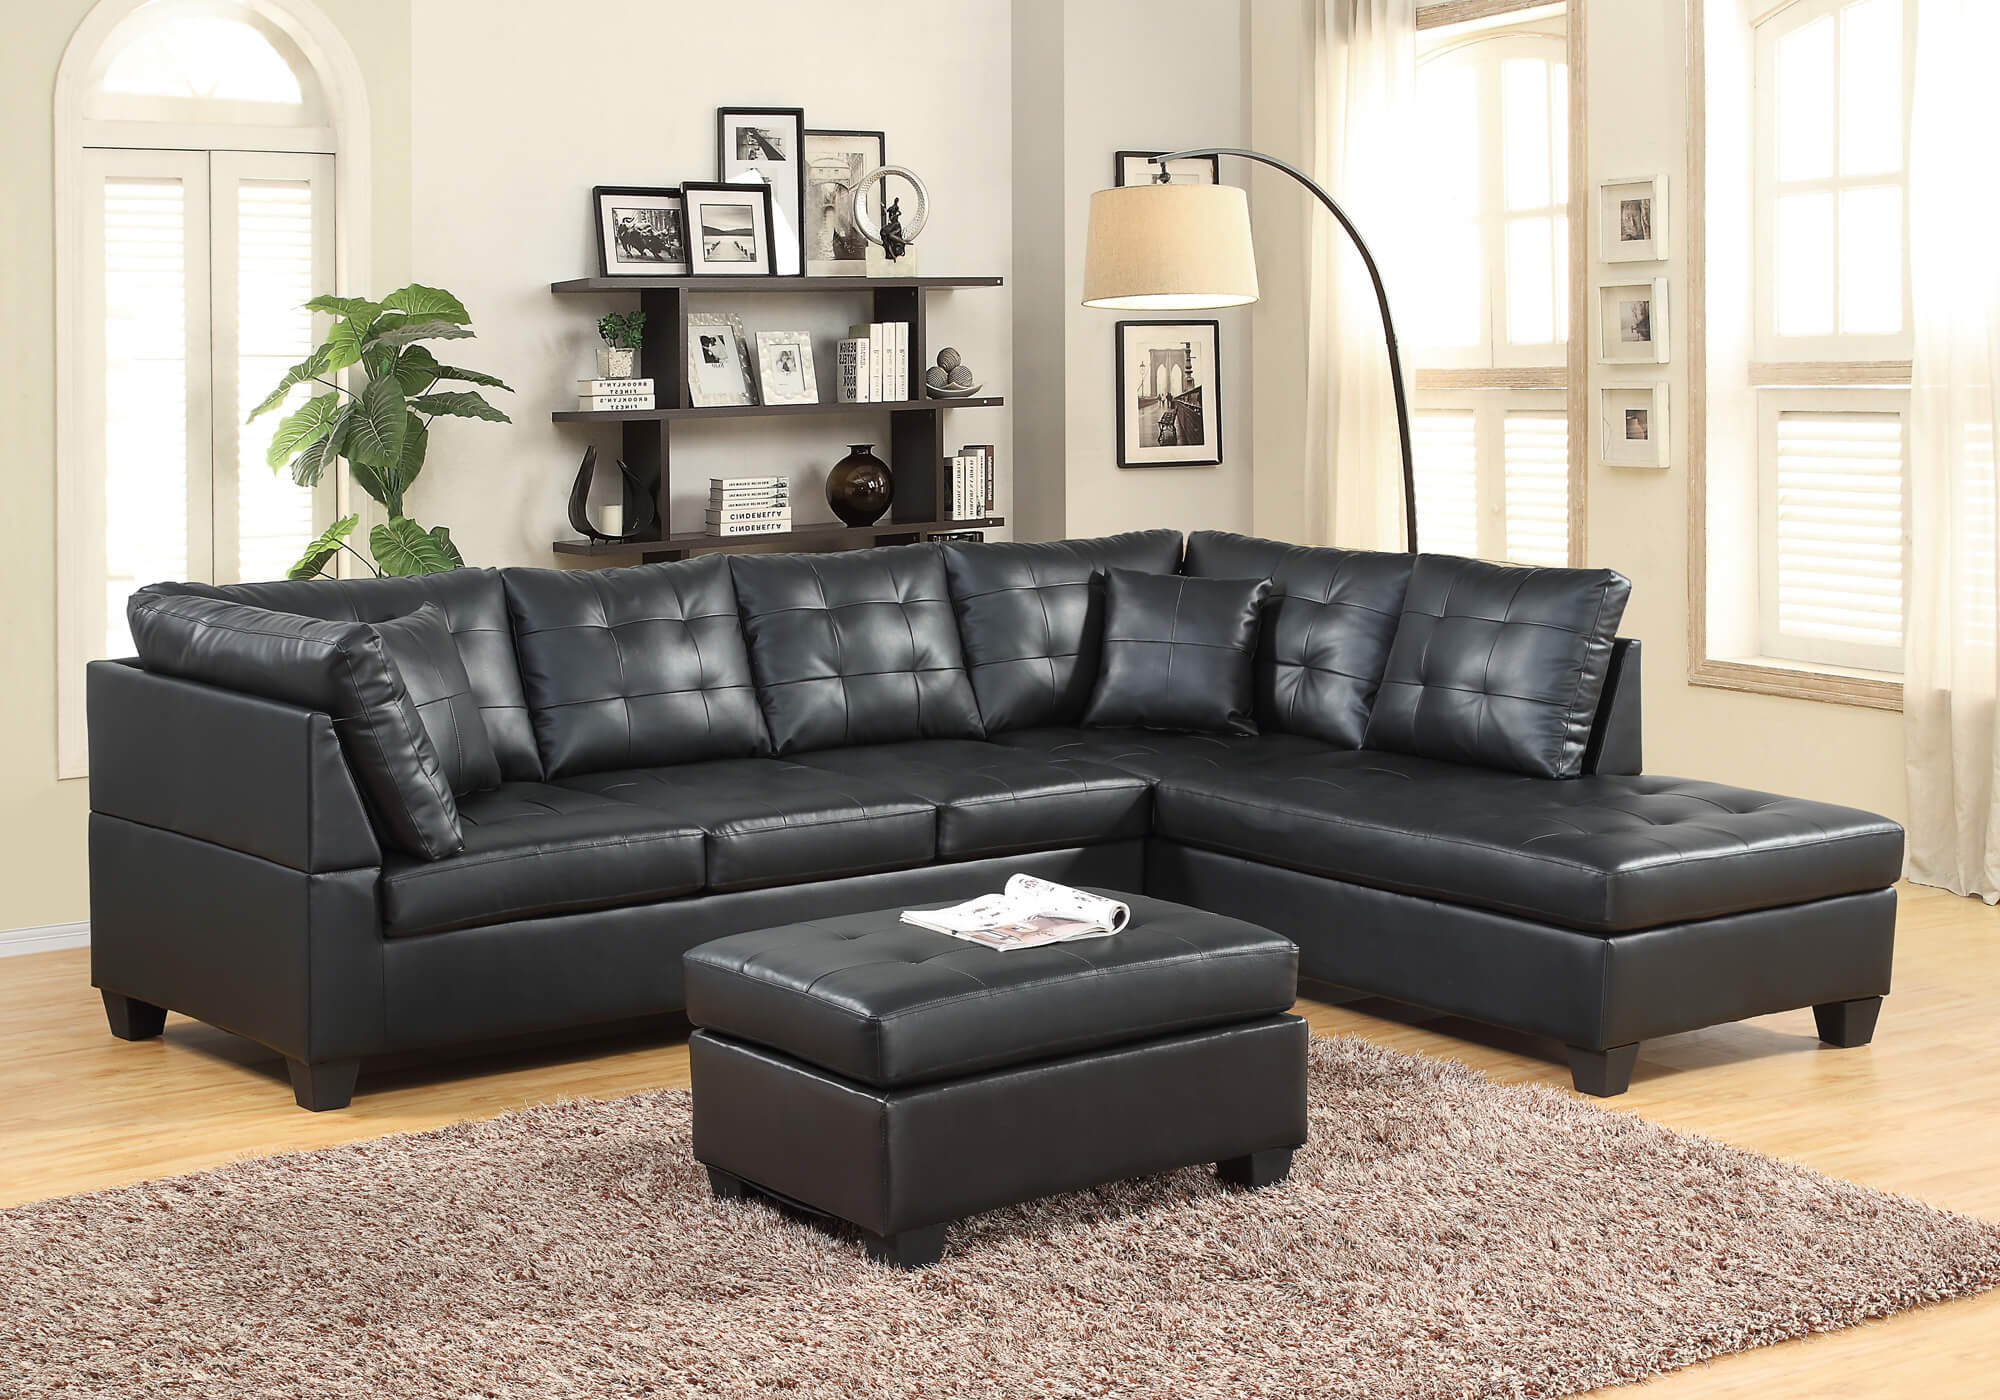 Black leather like sectiona sectional sofa sets for Leather sofa set